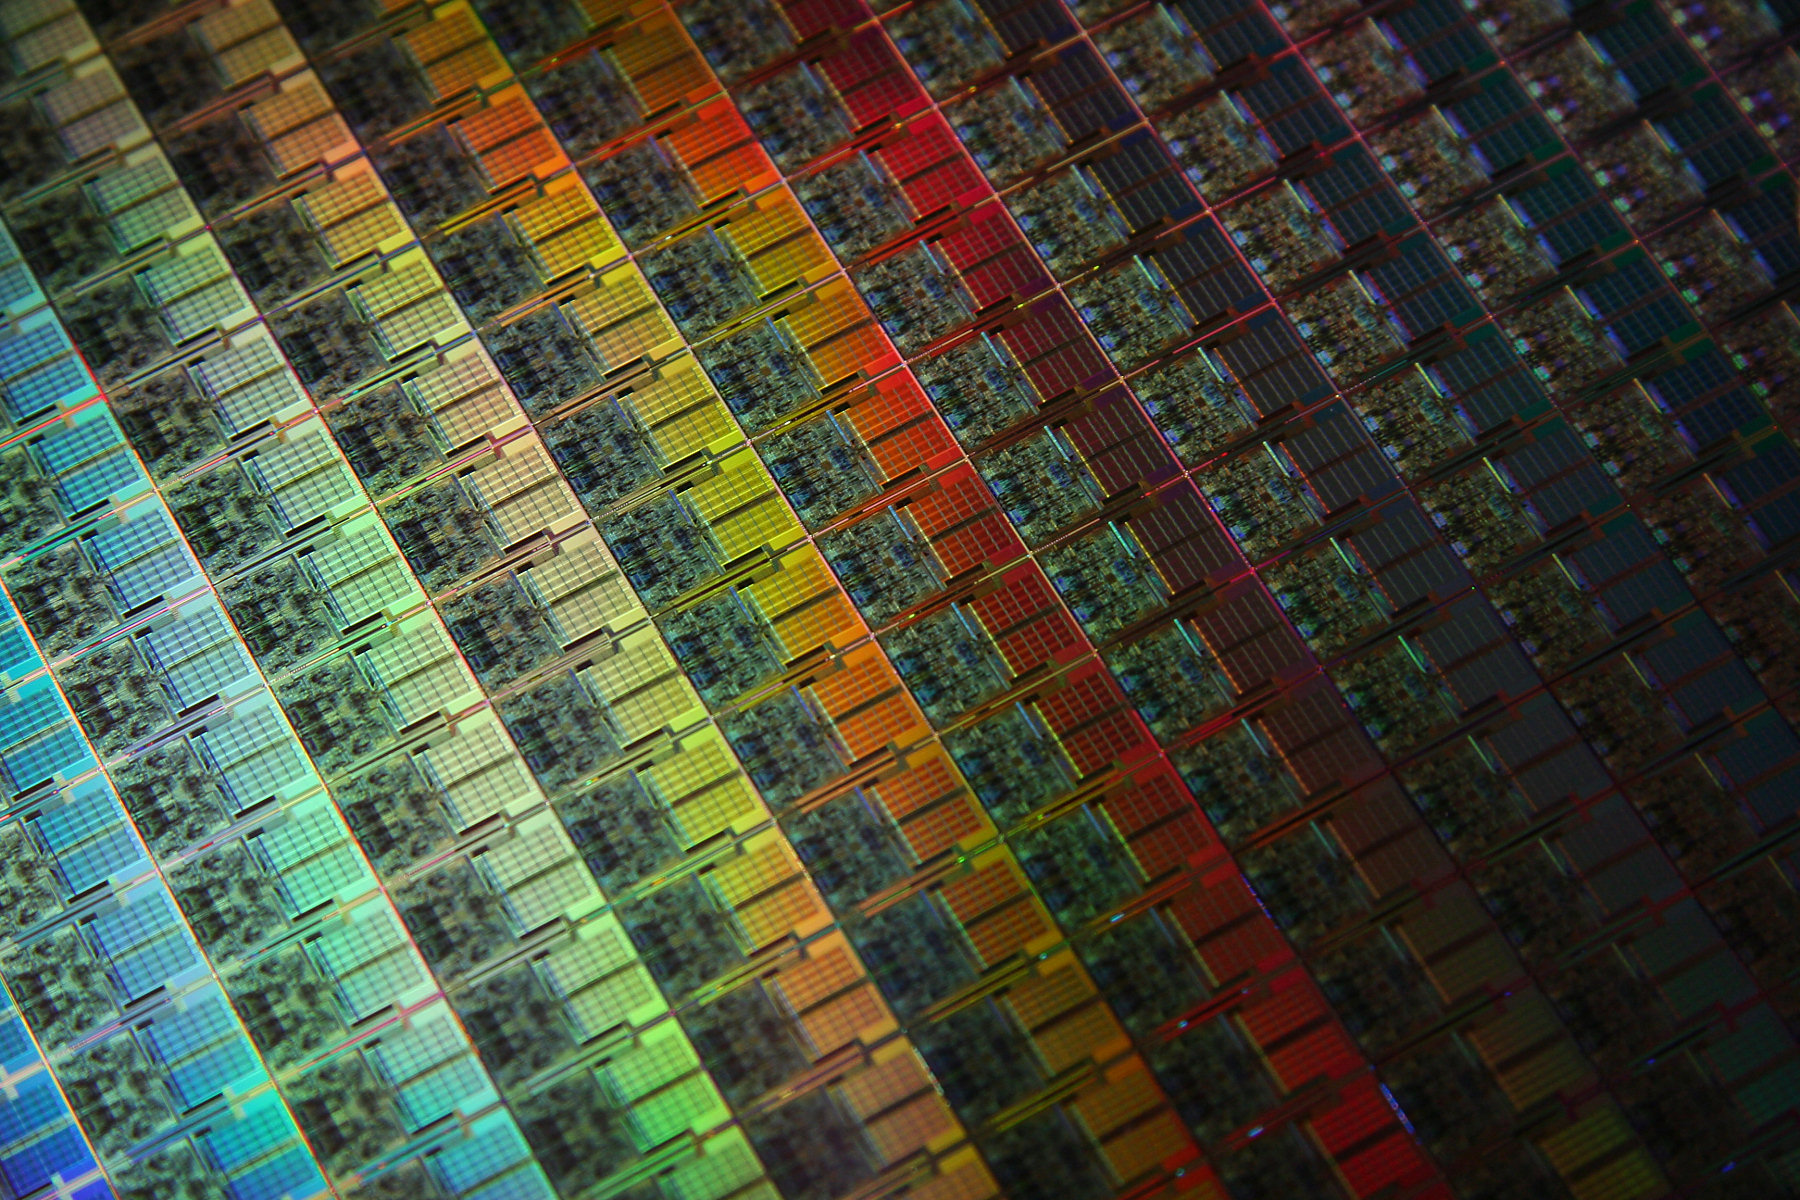 computer tech wallpaper widescreen - photo #35